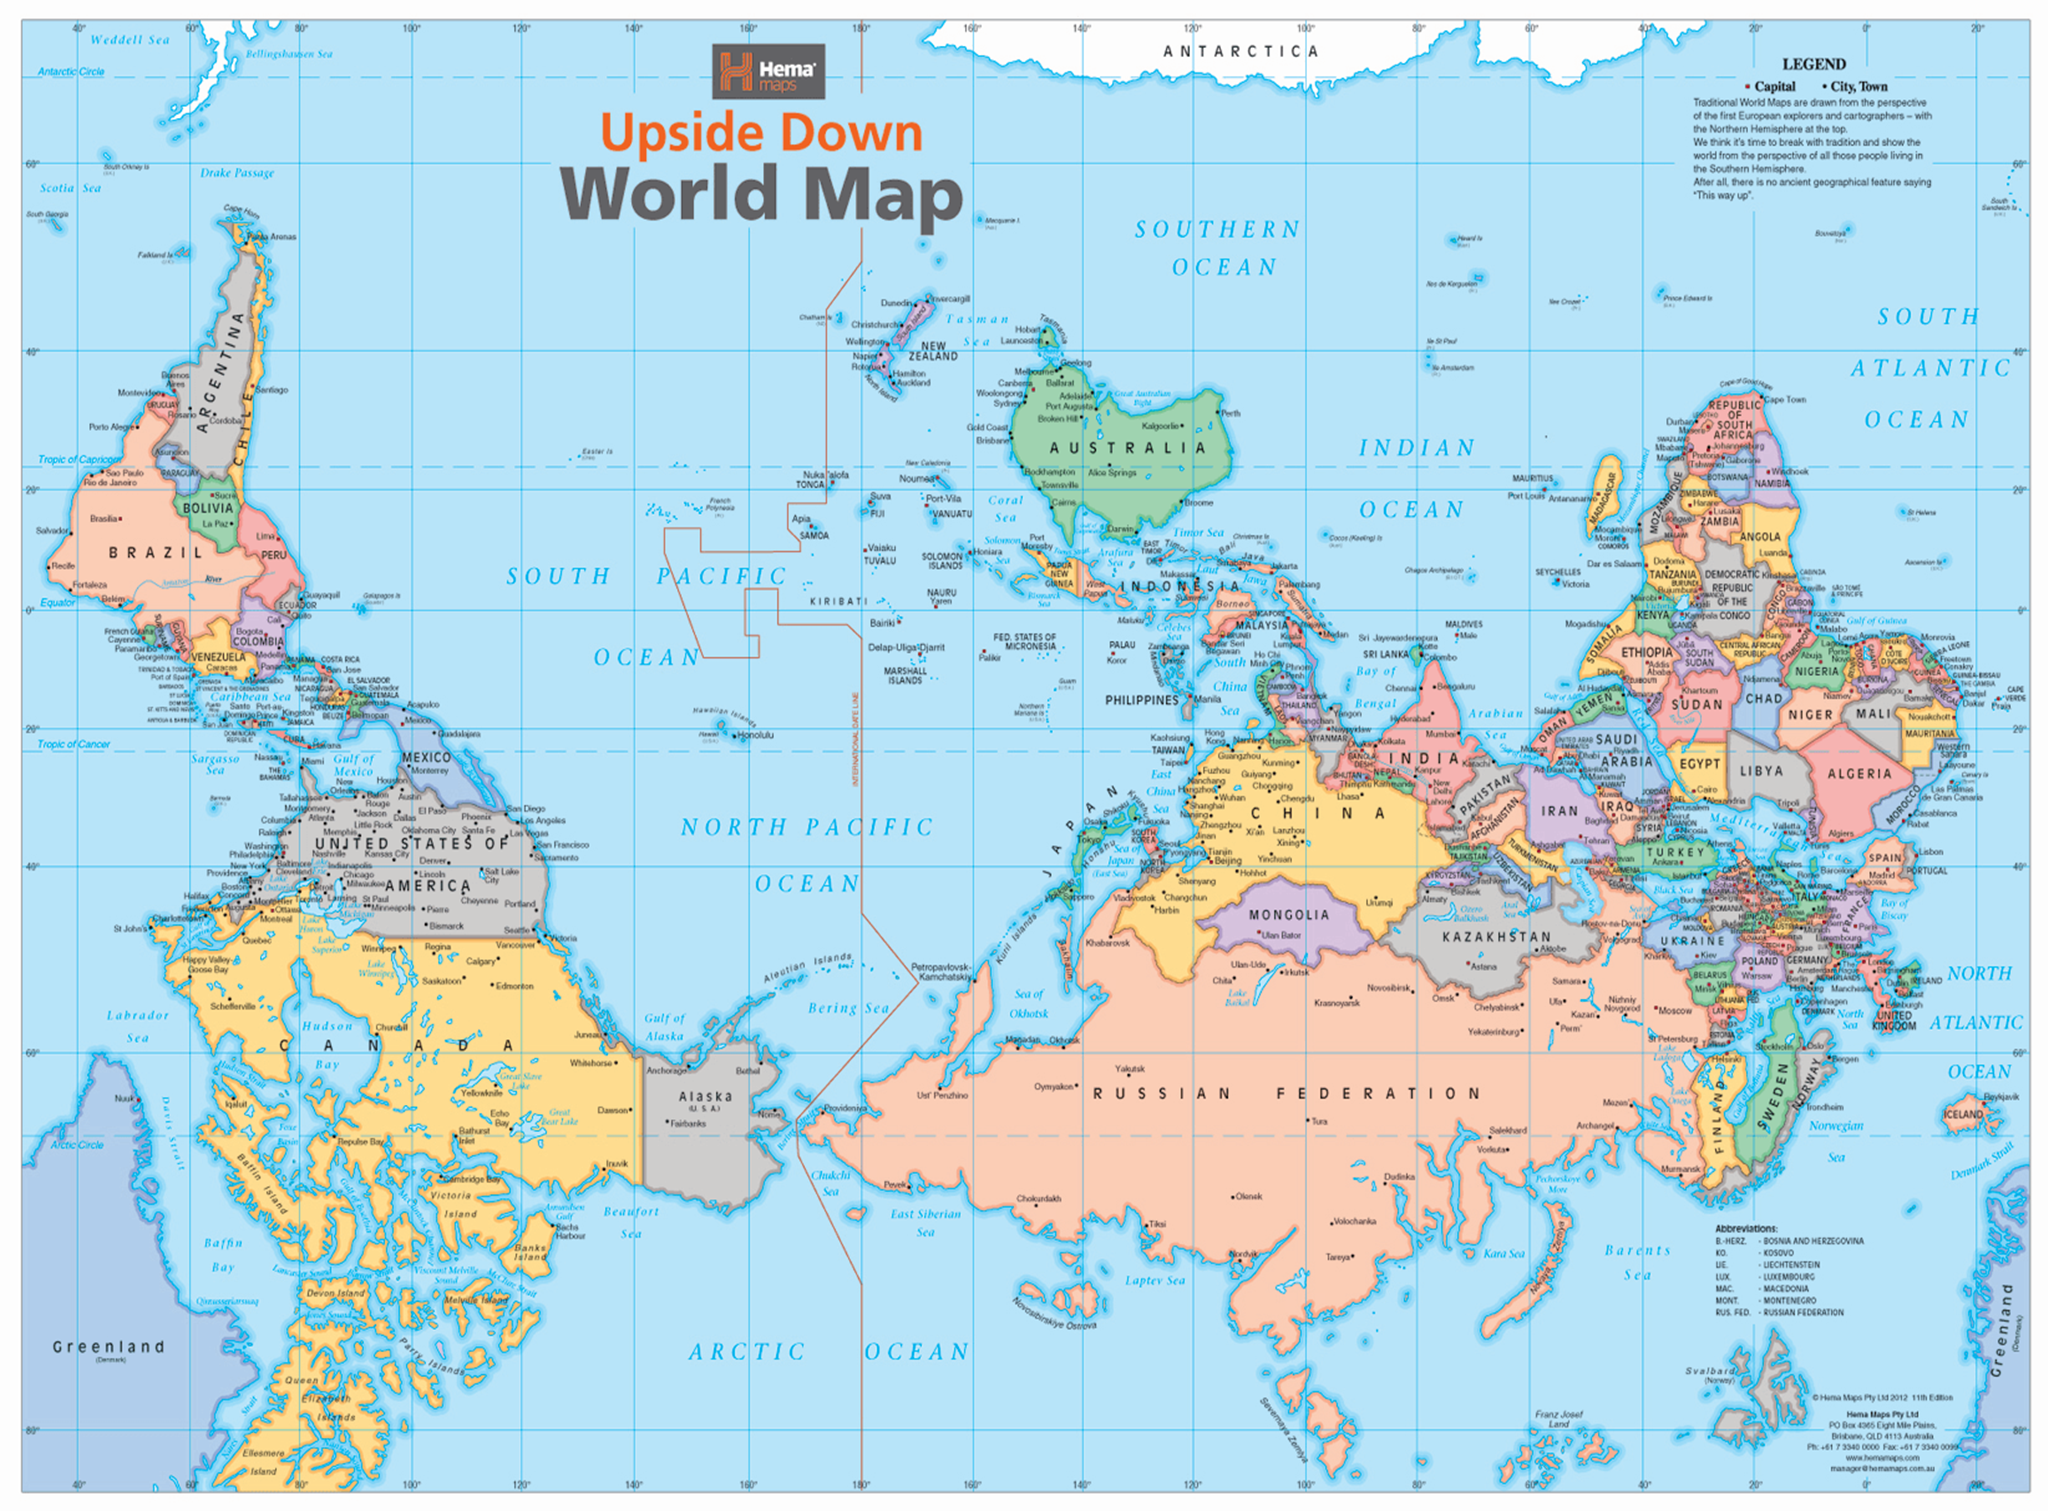 Australia Wall Map.Upside Down World Map 840 X 594mm Laminated Wall Map